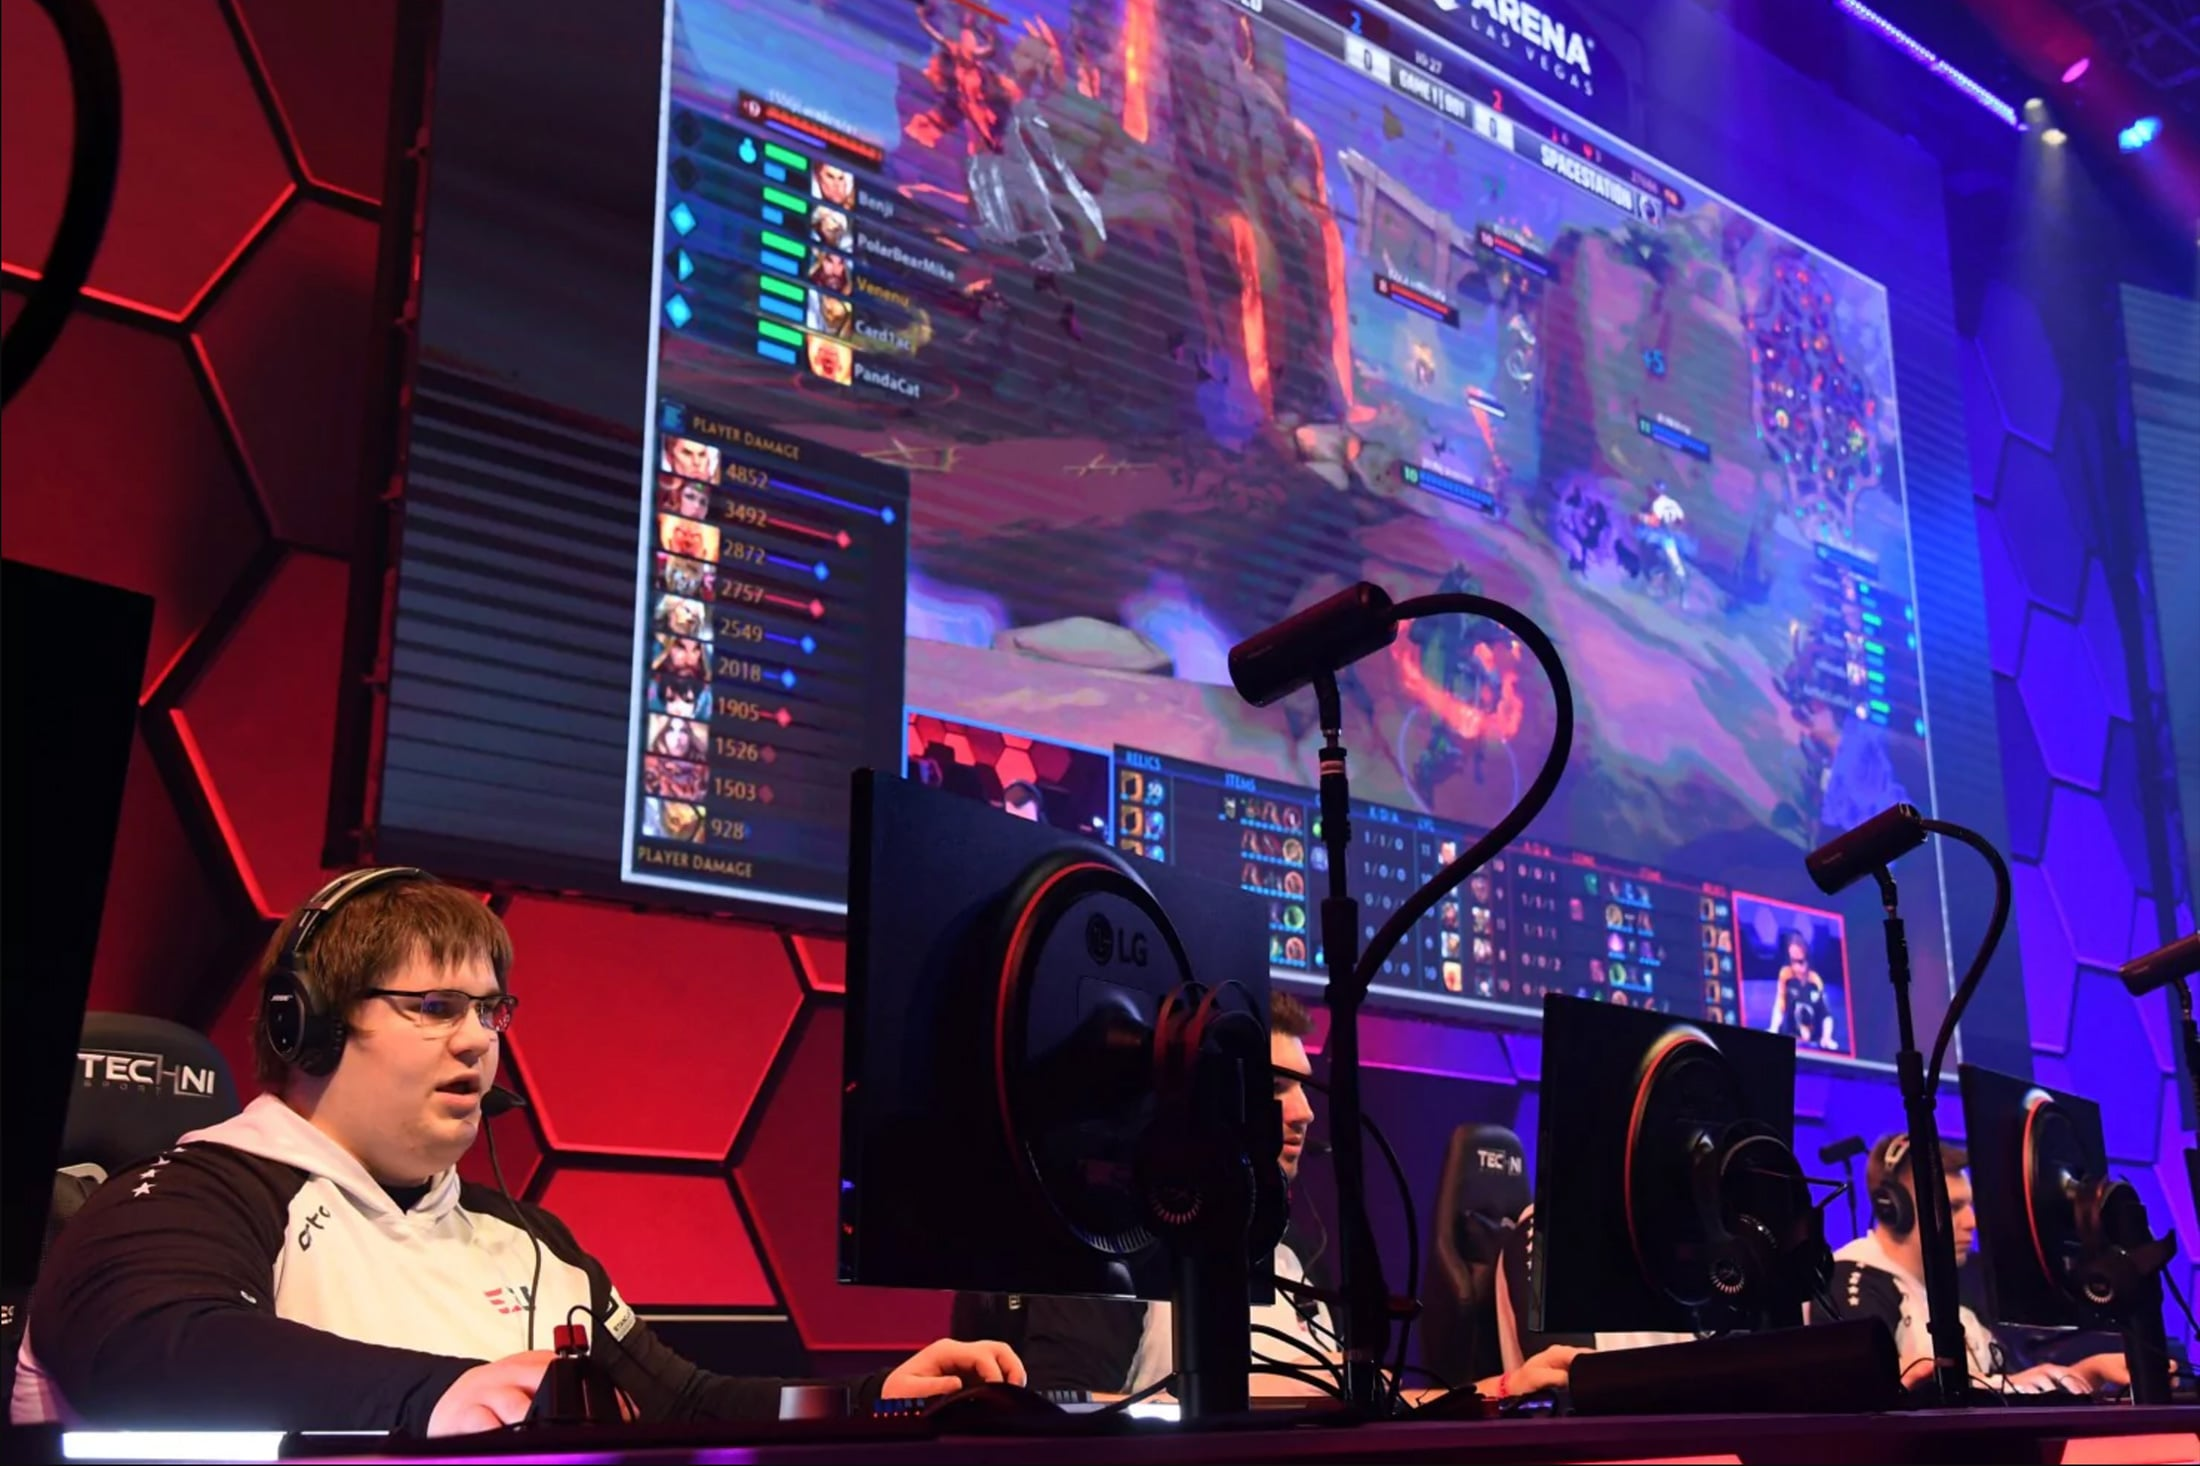 Players compete in a video game competition during the grand opening of esports Arena Las Vegas at Luxor Hotel and Casino. (Ethan Miller/Getty Images)